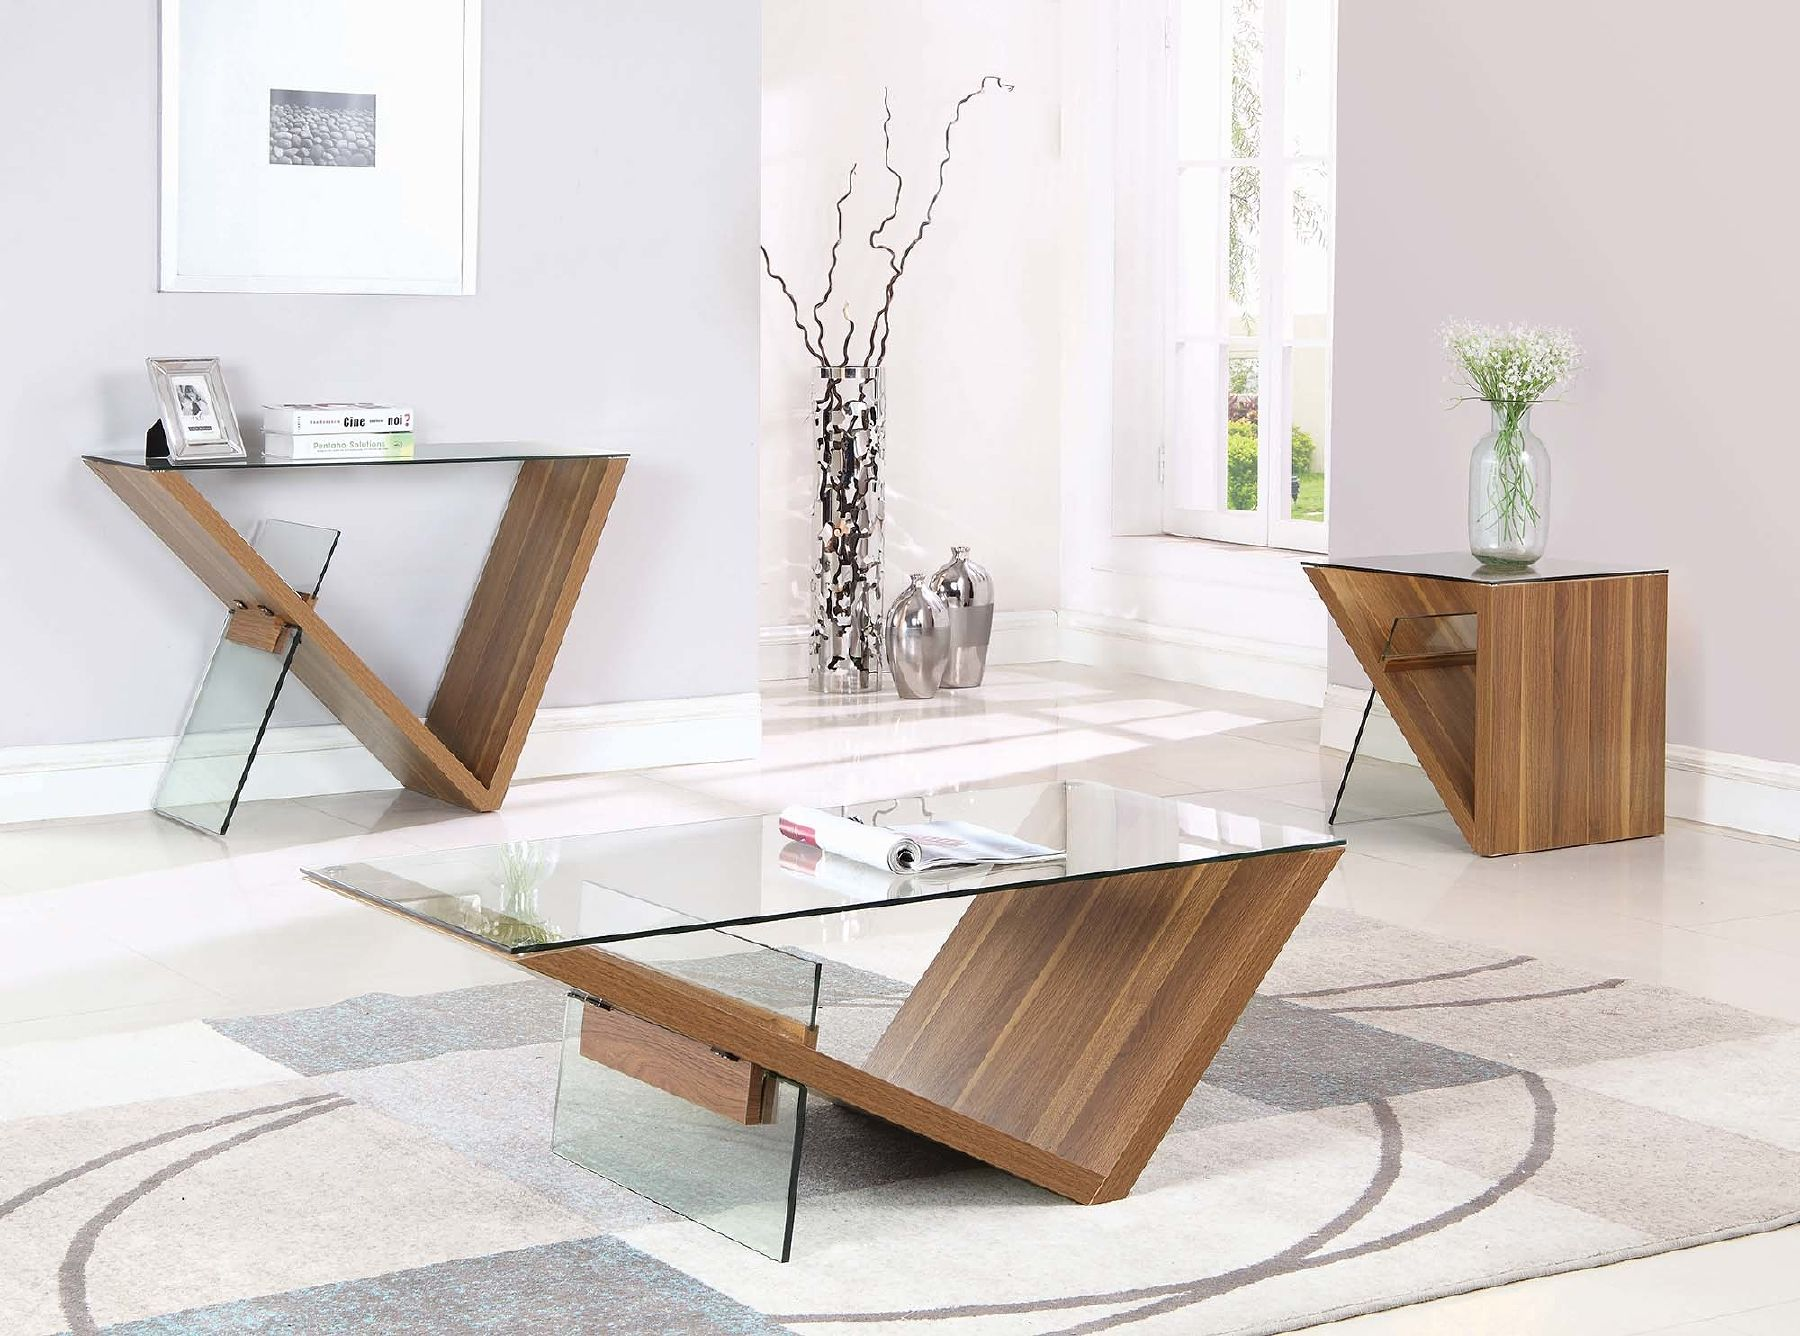 Pin On Furniture And Decoration Ideas